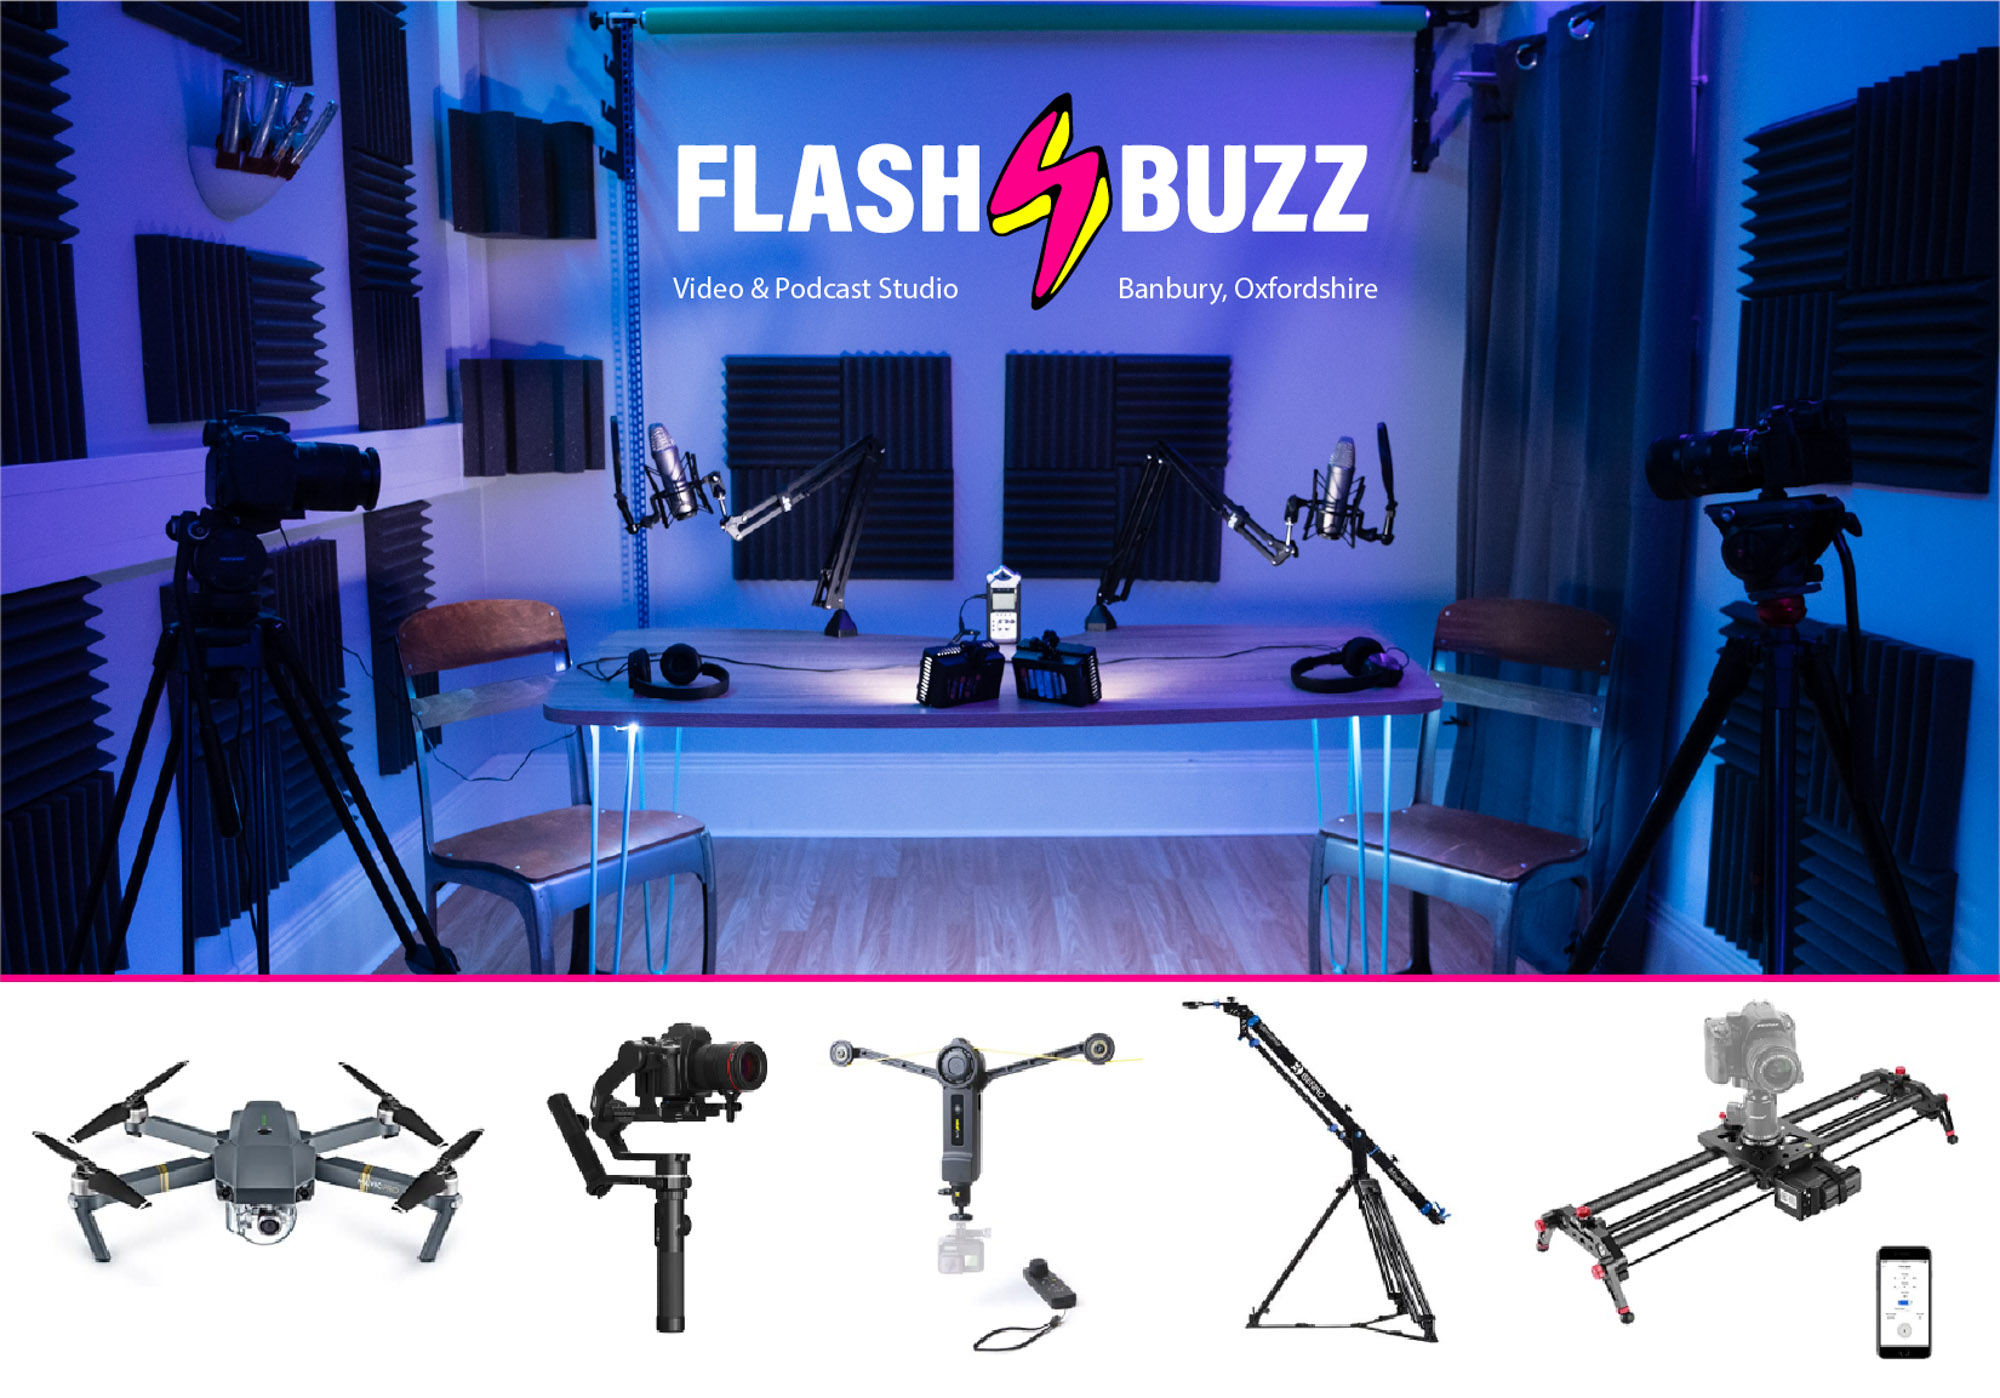 Flashbuzz video & podcast studio Banbury, Oxfordshire